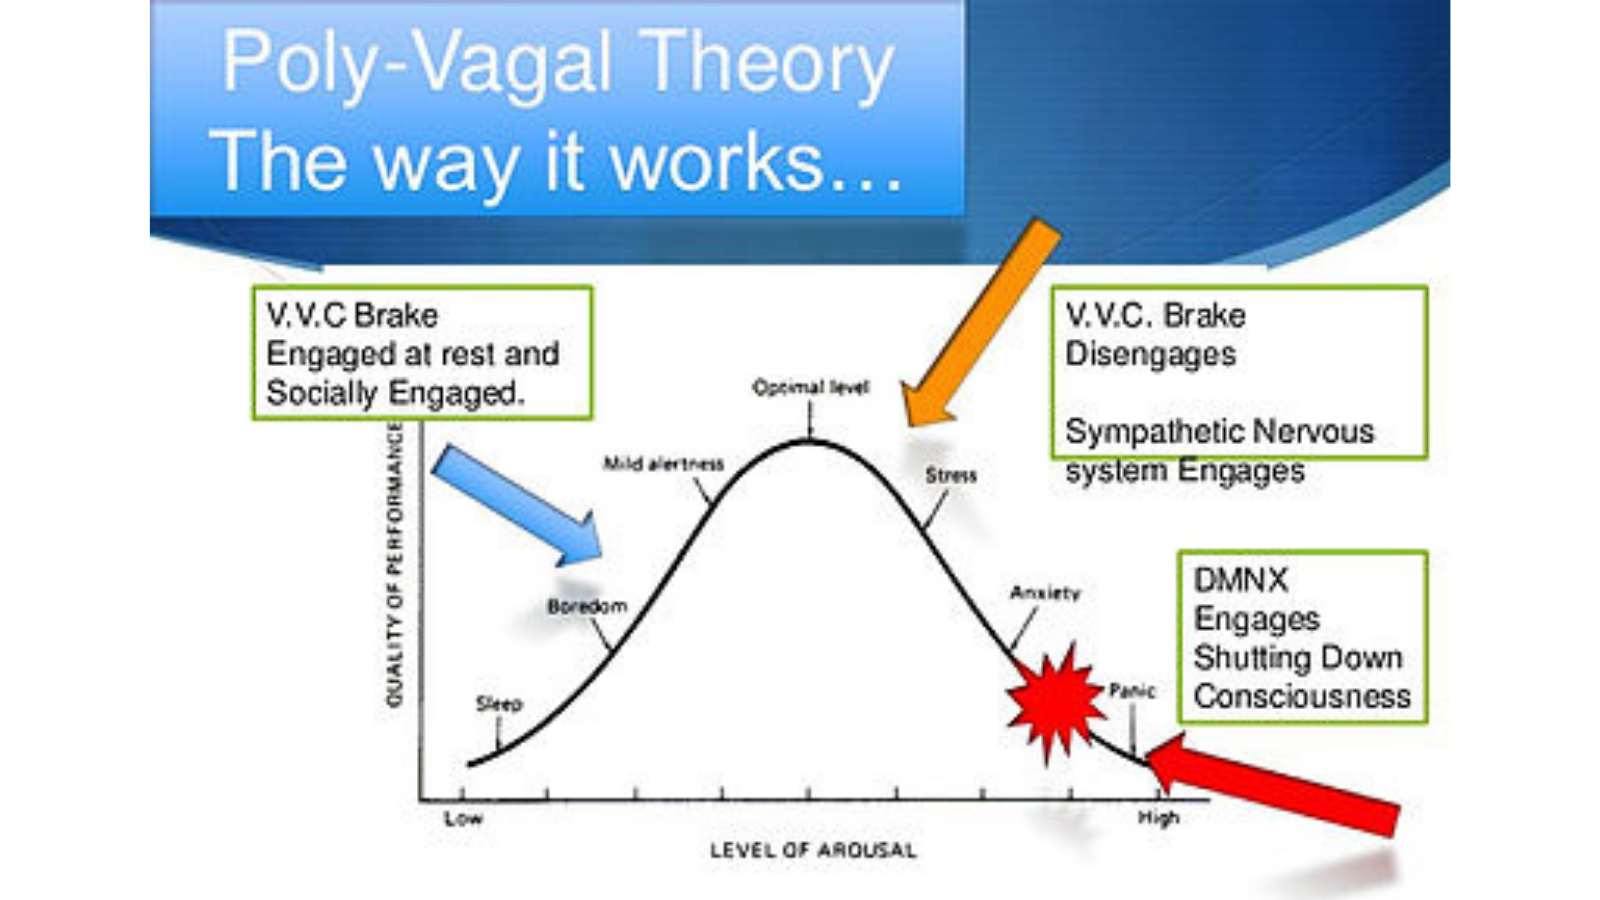 """Illustration of the Poly-Vagal Theory and the """"brakes"""" for the sympathetic nervous system"""